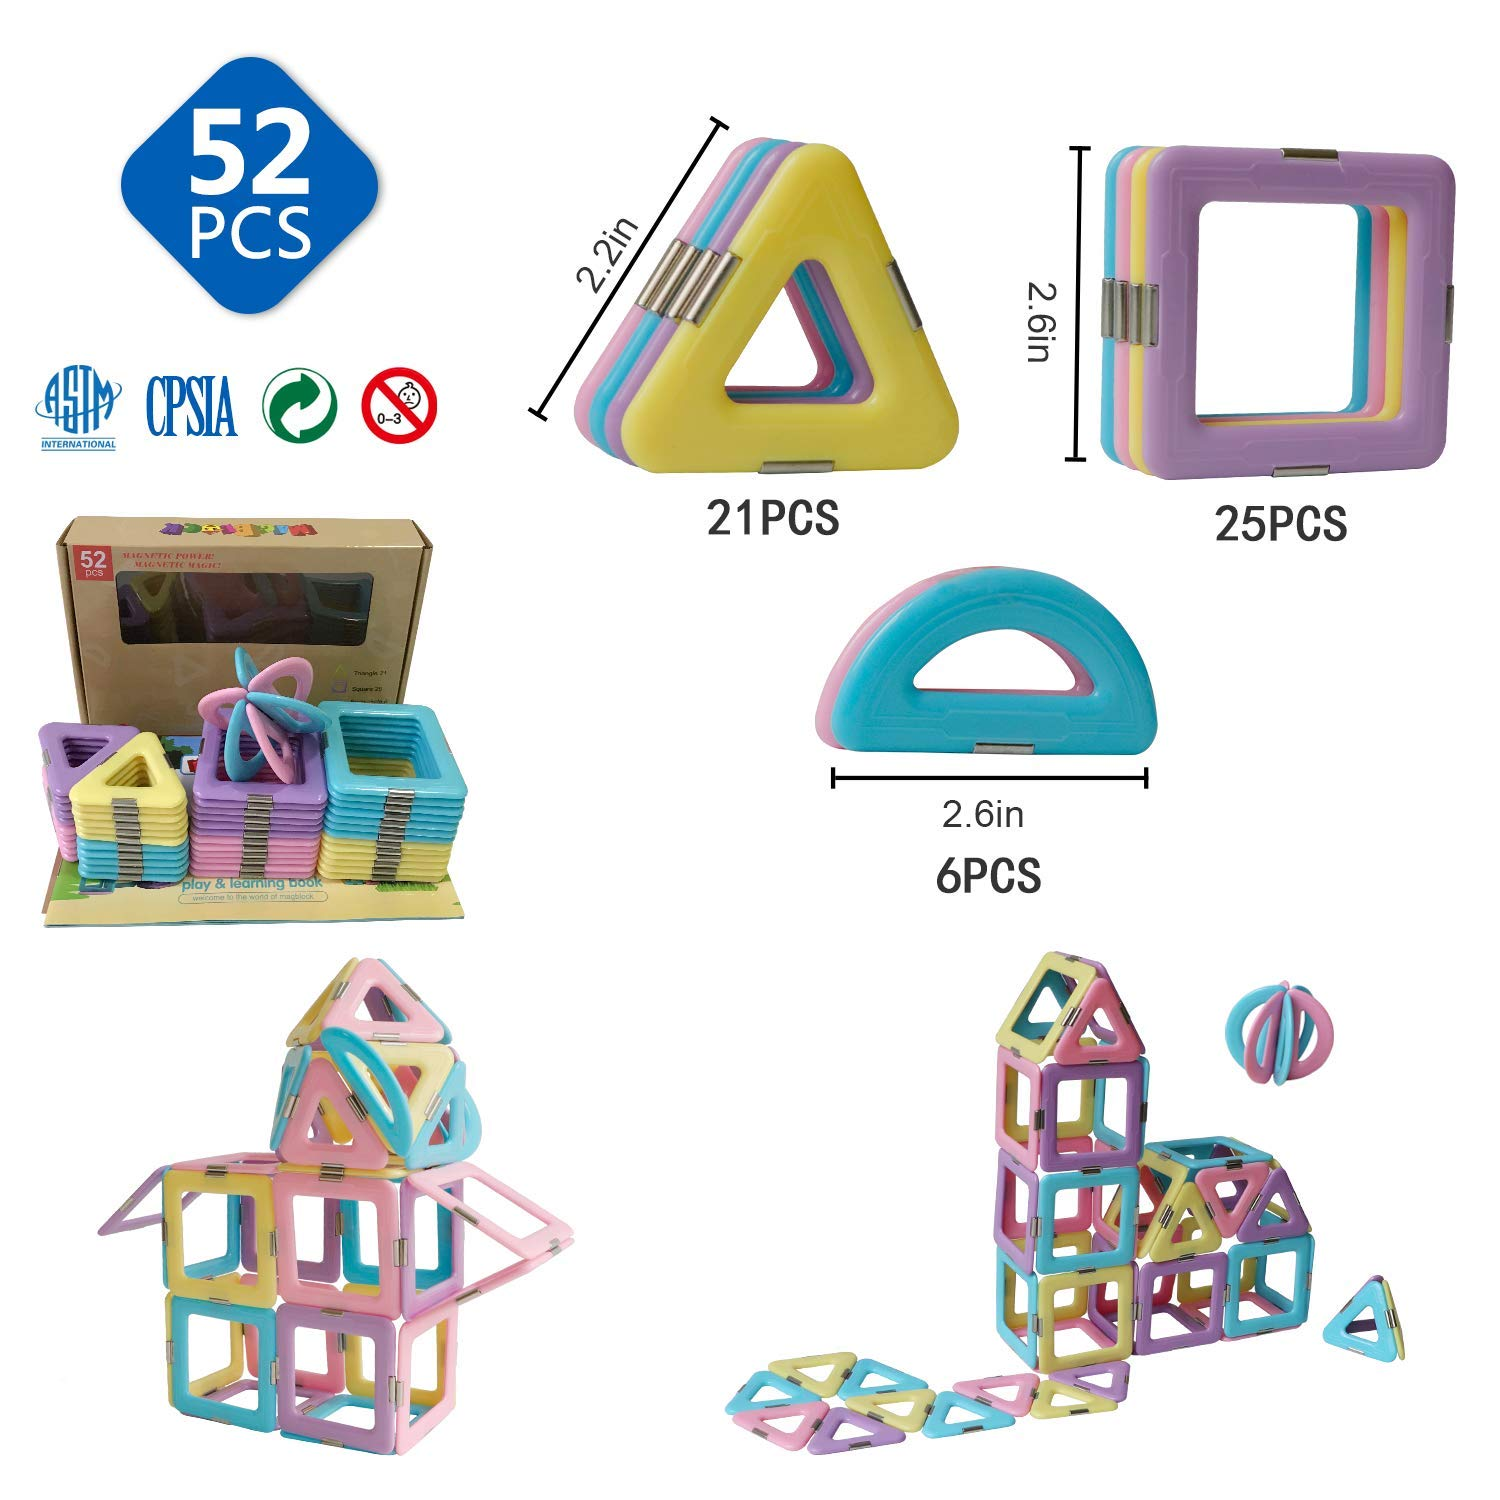 3D Magnetic Tiles 52 Pieces Set for Toddlers Kids Magnetic Building Blocks with Candy Color Educational Toys TUOXIANG Magnetic Blocks